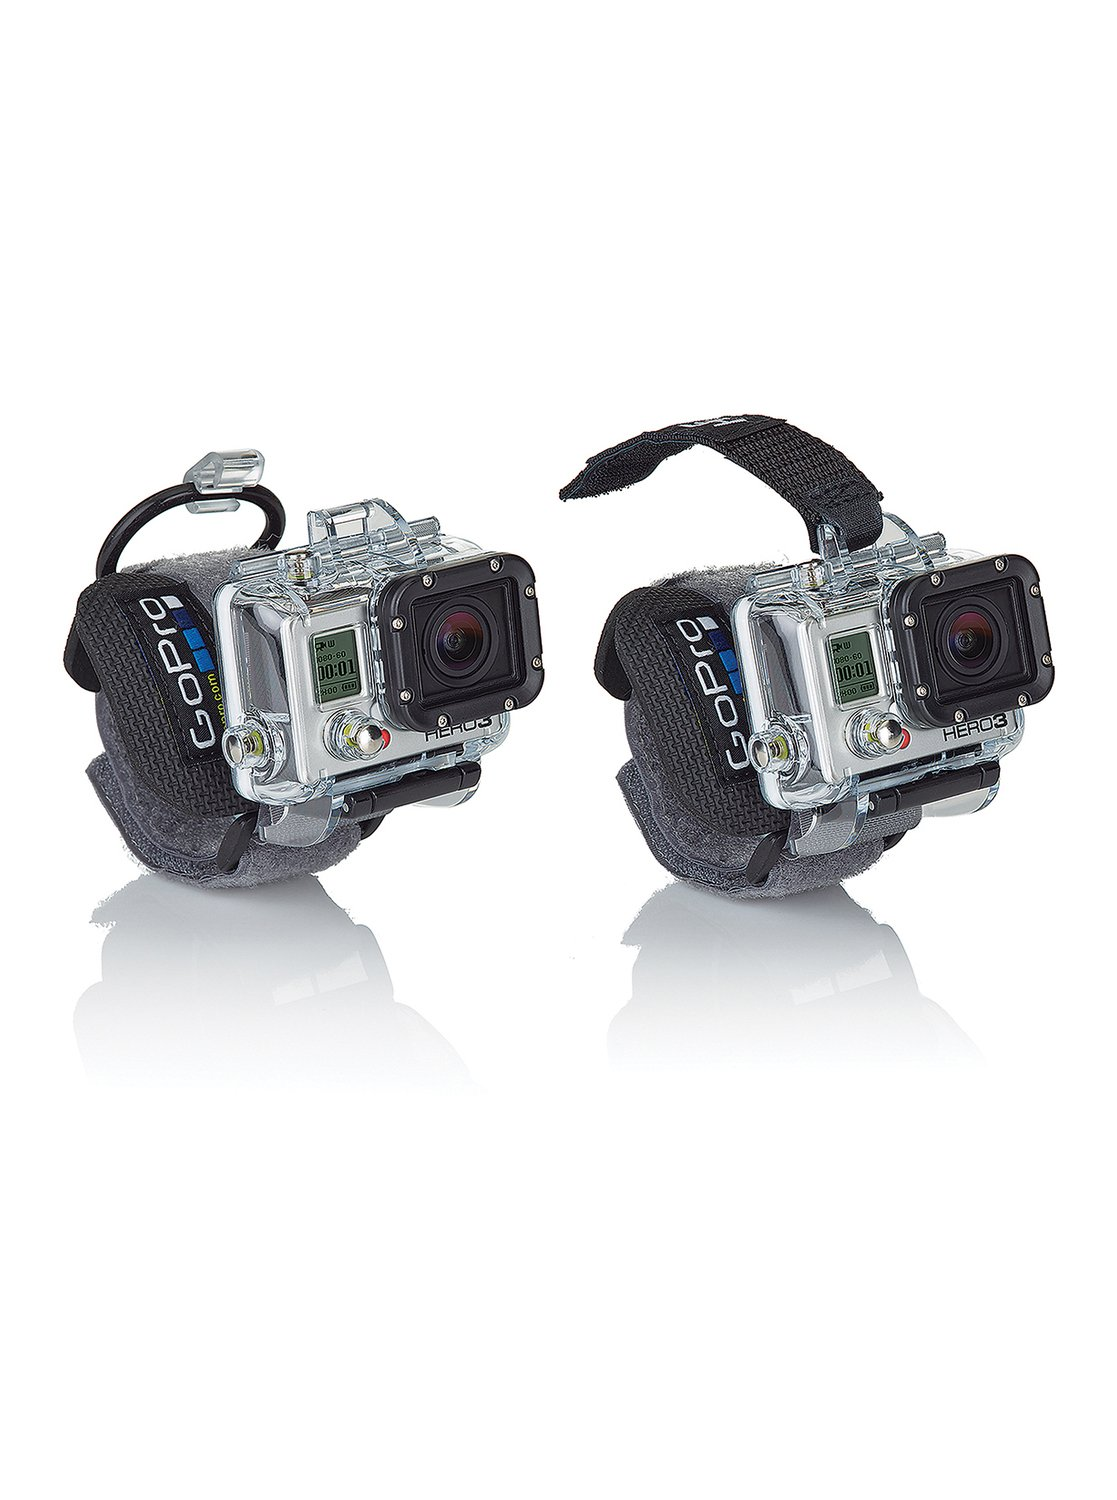 gopro hero 3 wrist housing gprhdw3 roxy. Black Bedroom Furniture Sets. Home Design Ideas